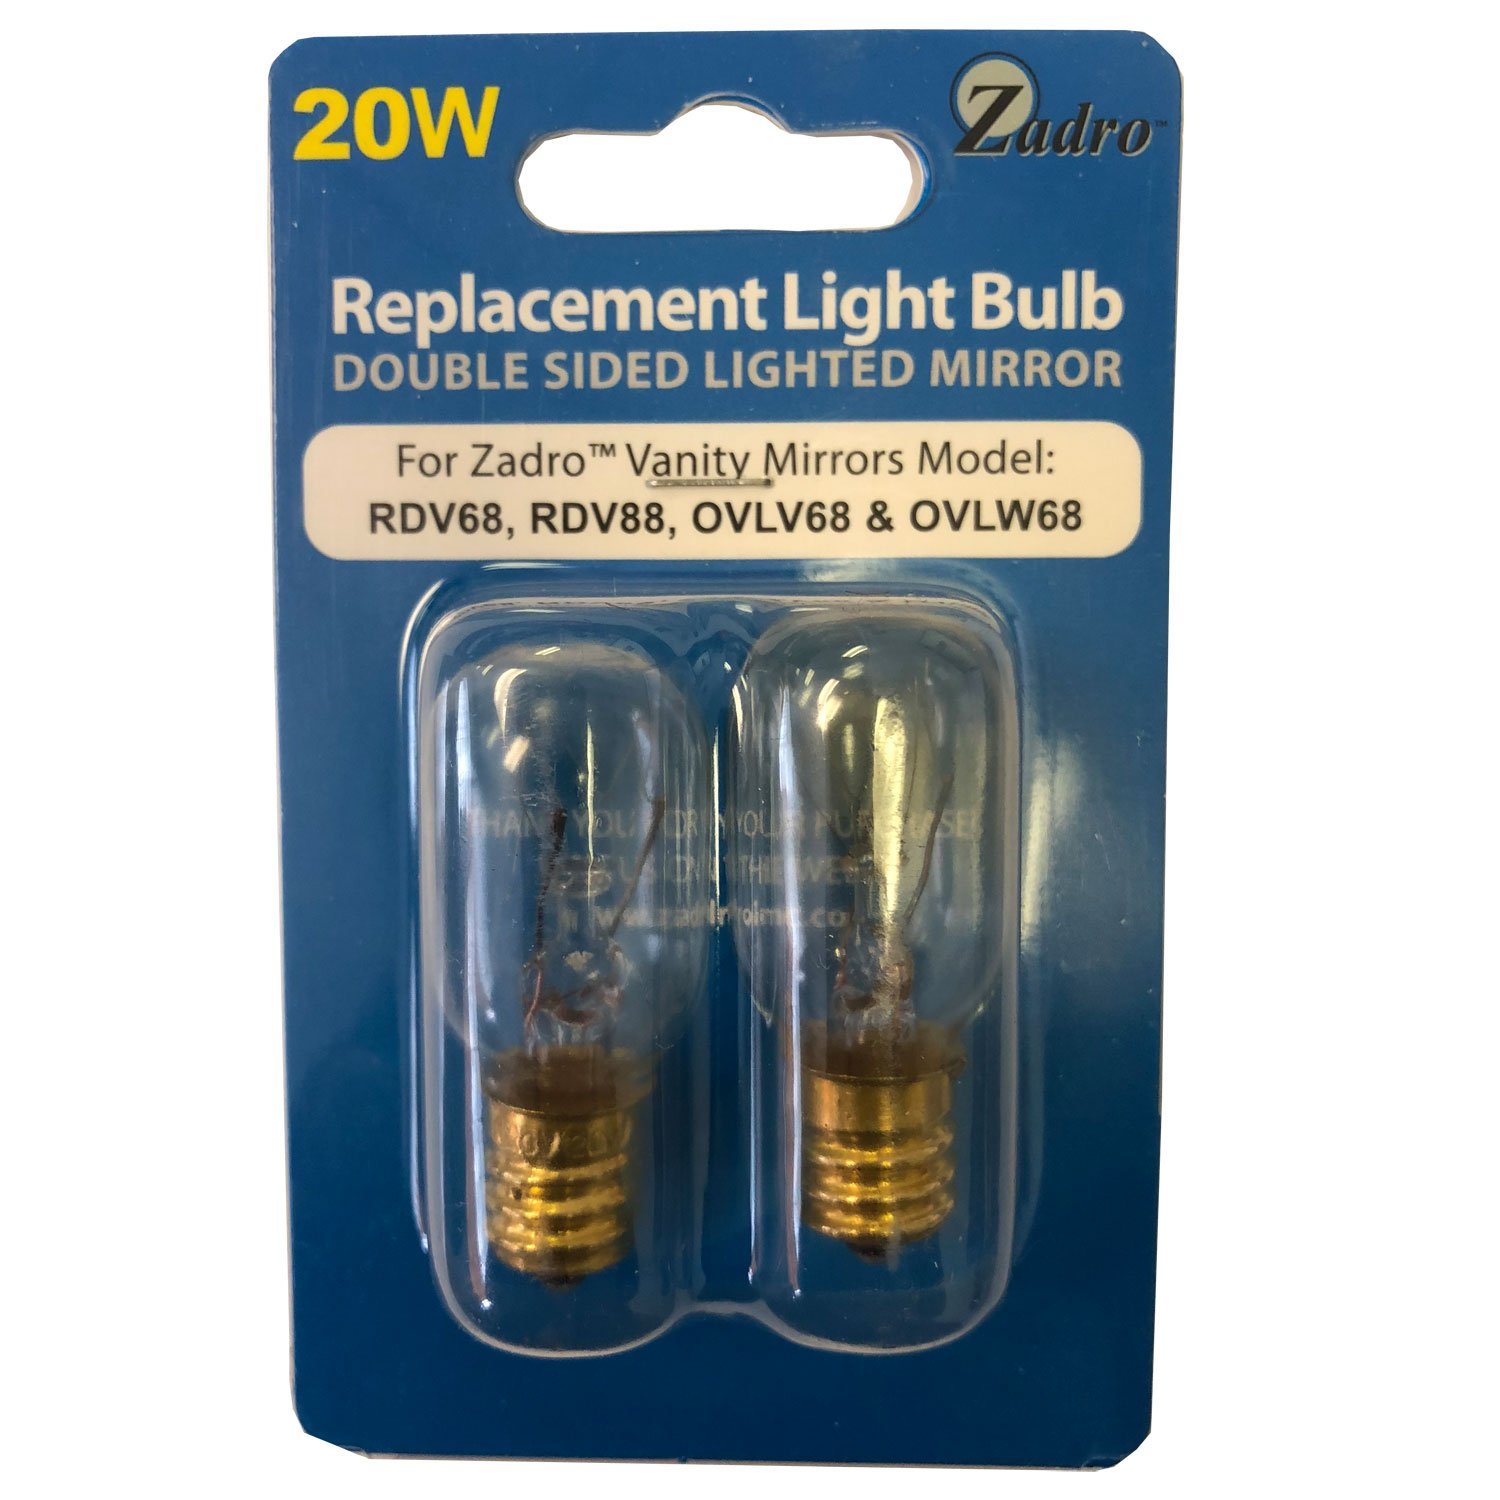 Zadro 20 Watt Replacement Light Bulb For Zadro Vanity